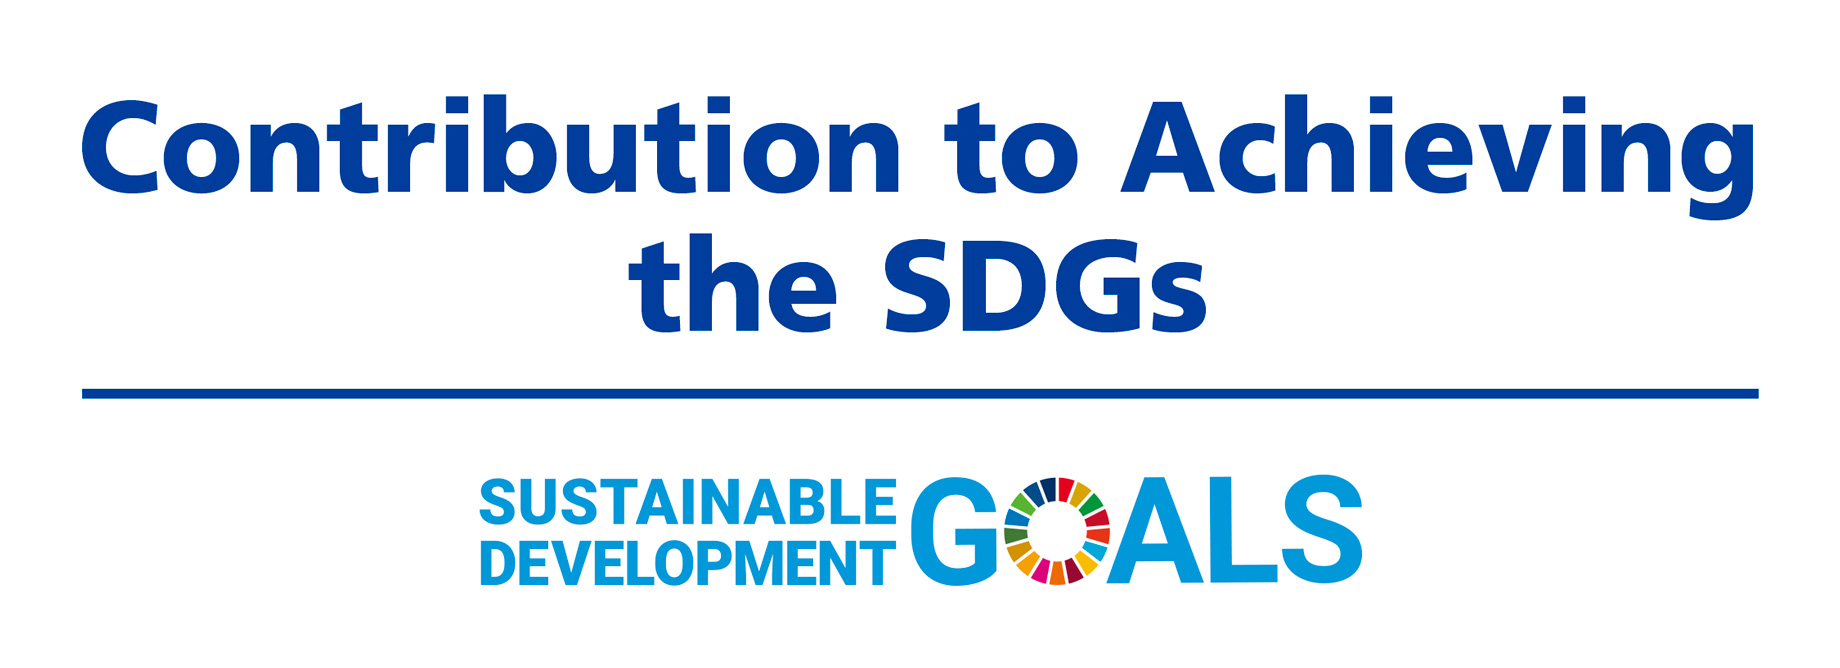 Contribution to Achieving the SDGs